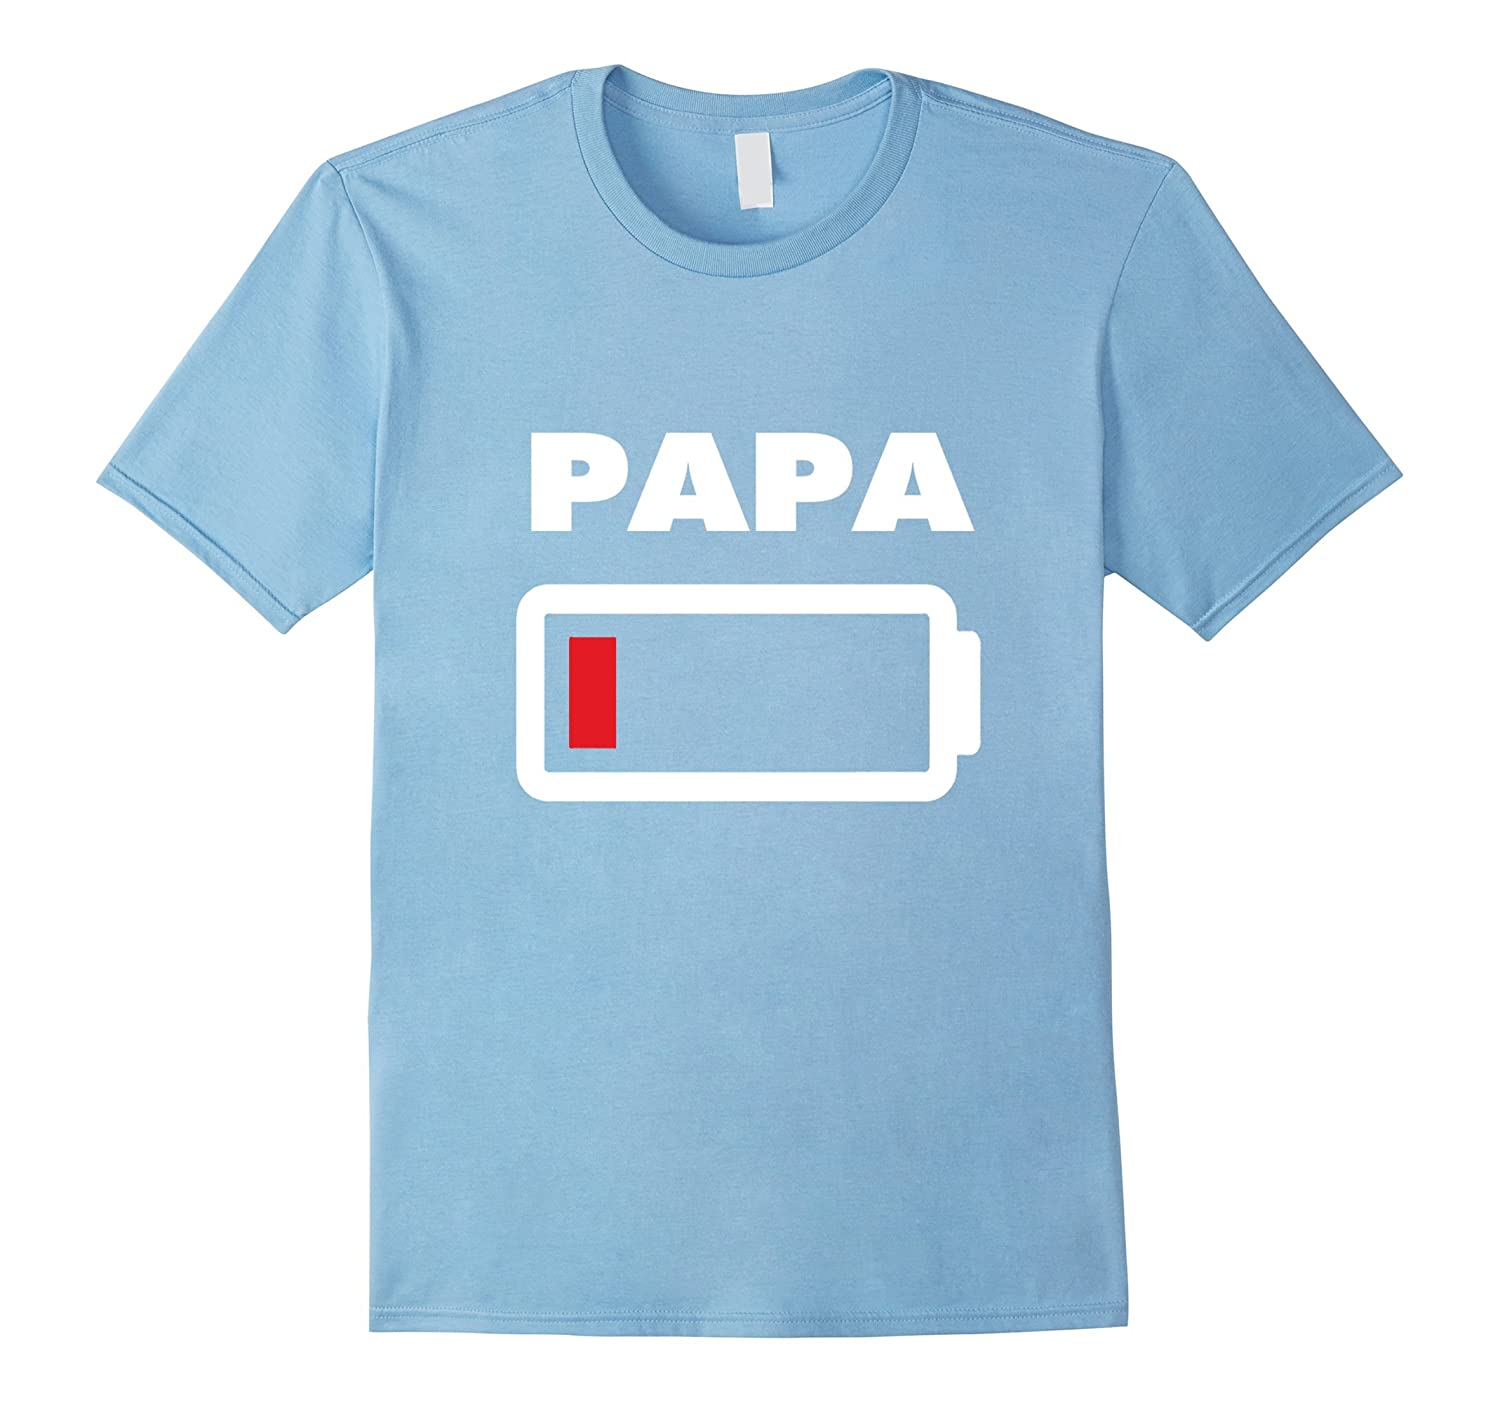 Papa Battery Empty shirt - Mom and Son matching Outfits 6-TH